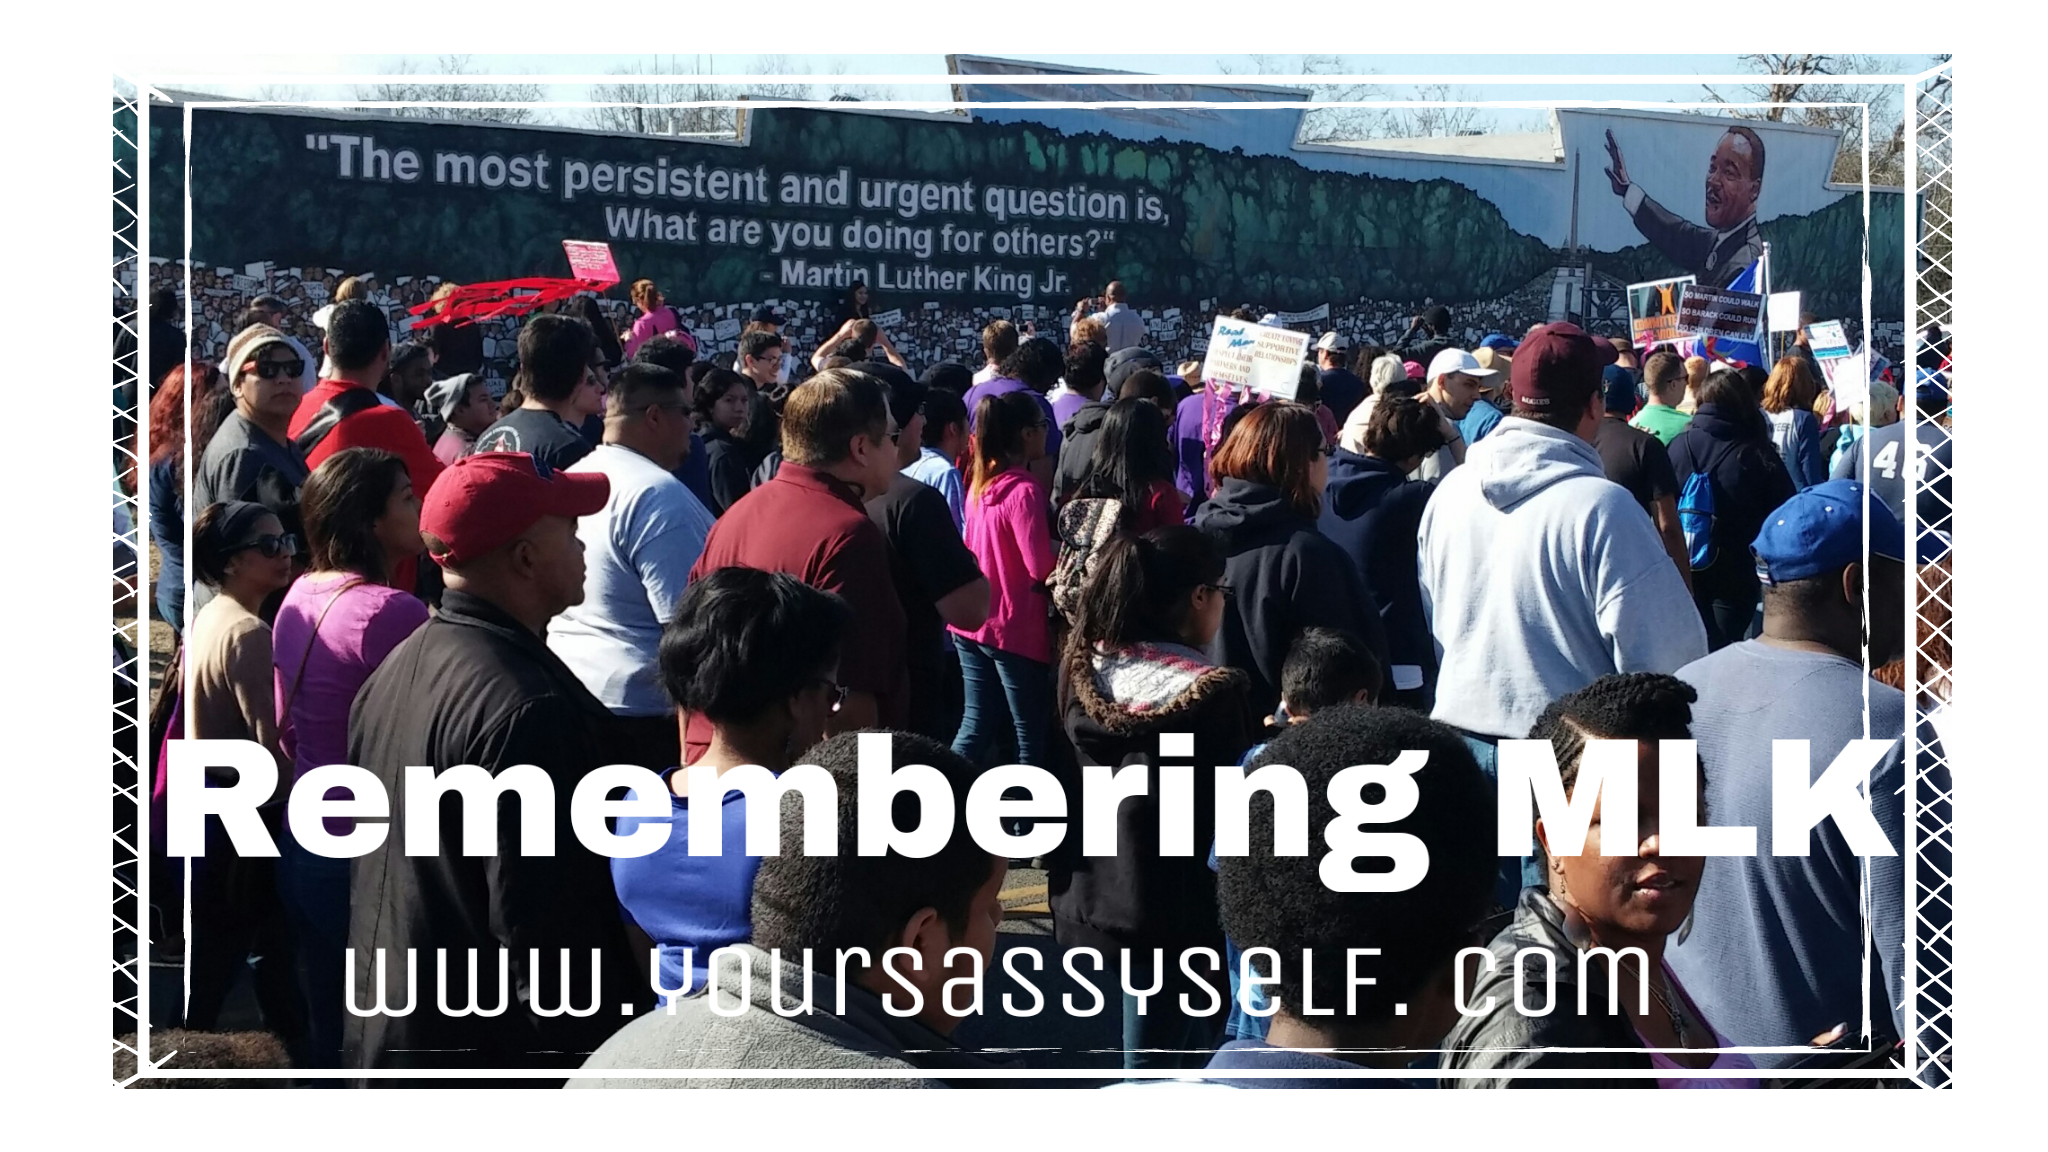 RememberingMLK-yoursassyself.com